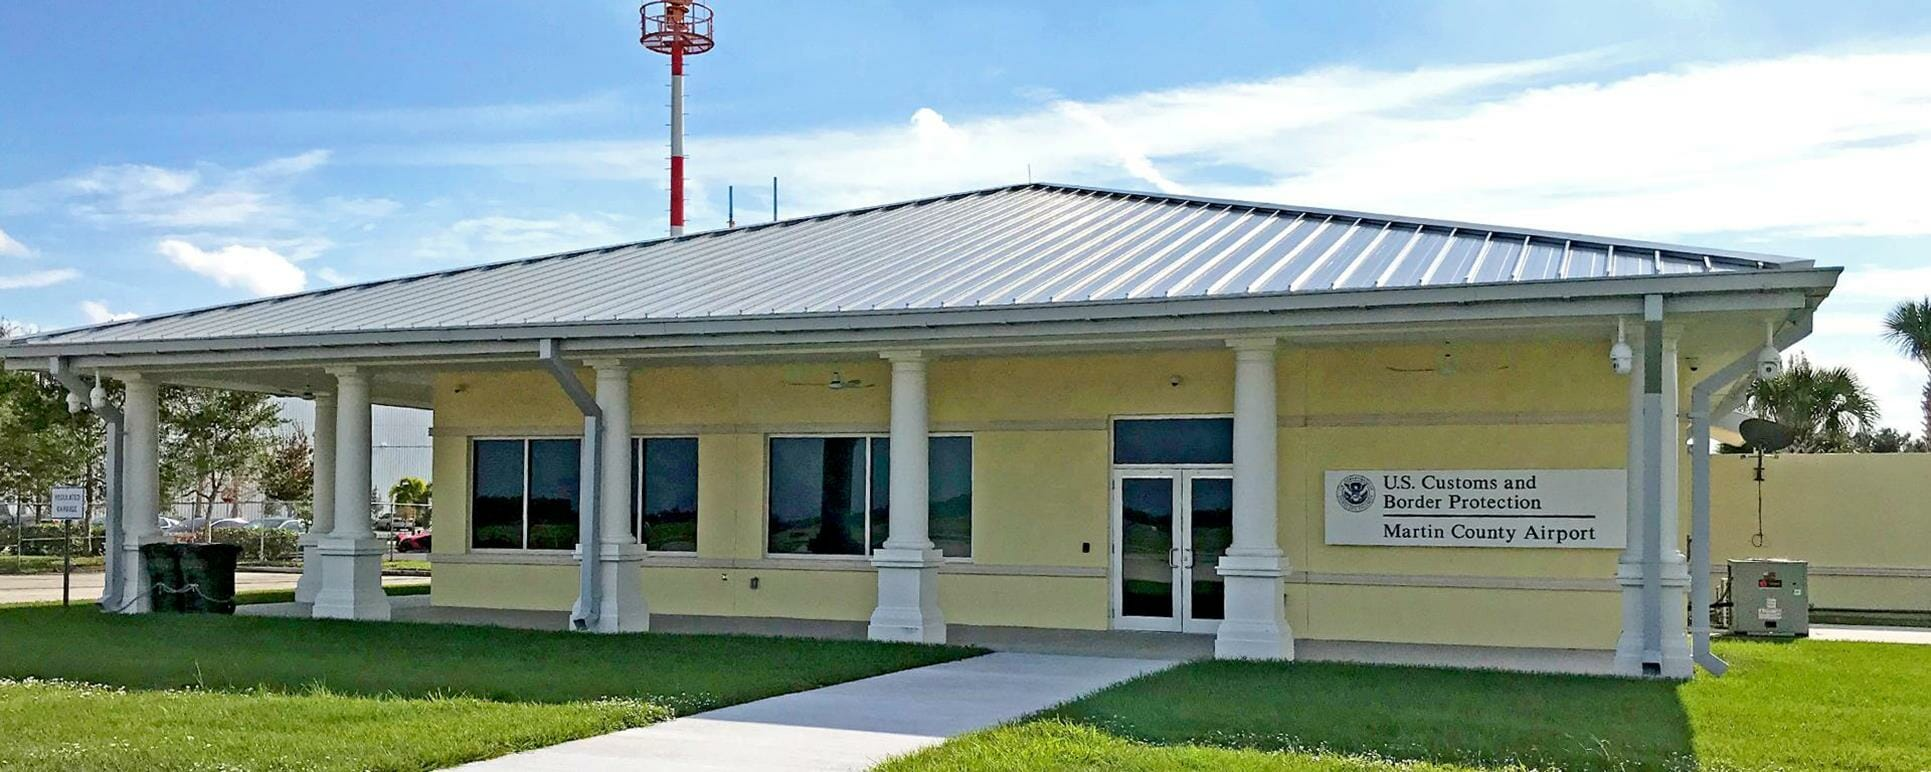 NEW CUSTOMS FACILITY COMES TO MARTIN COUNTY